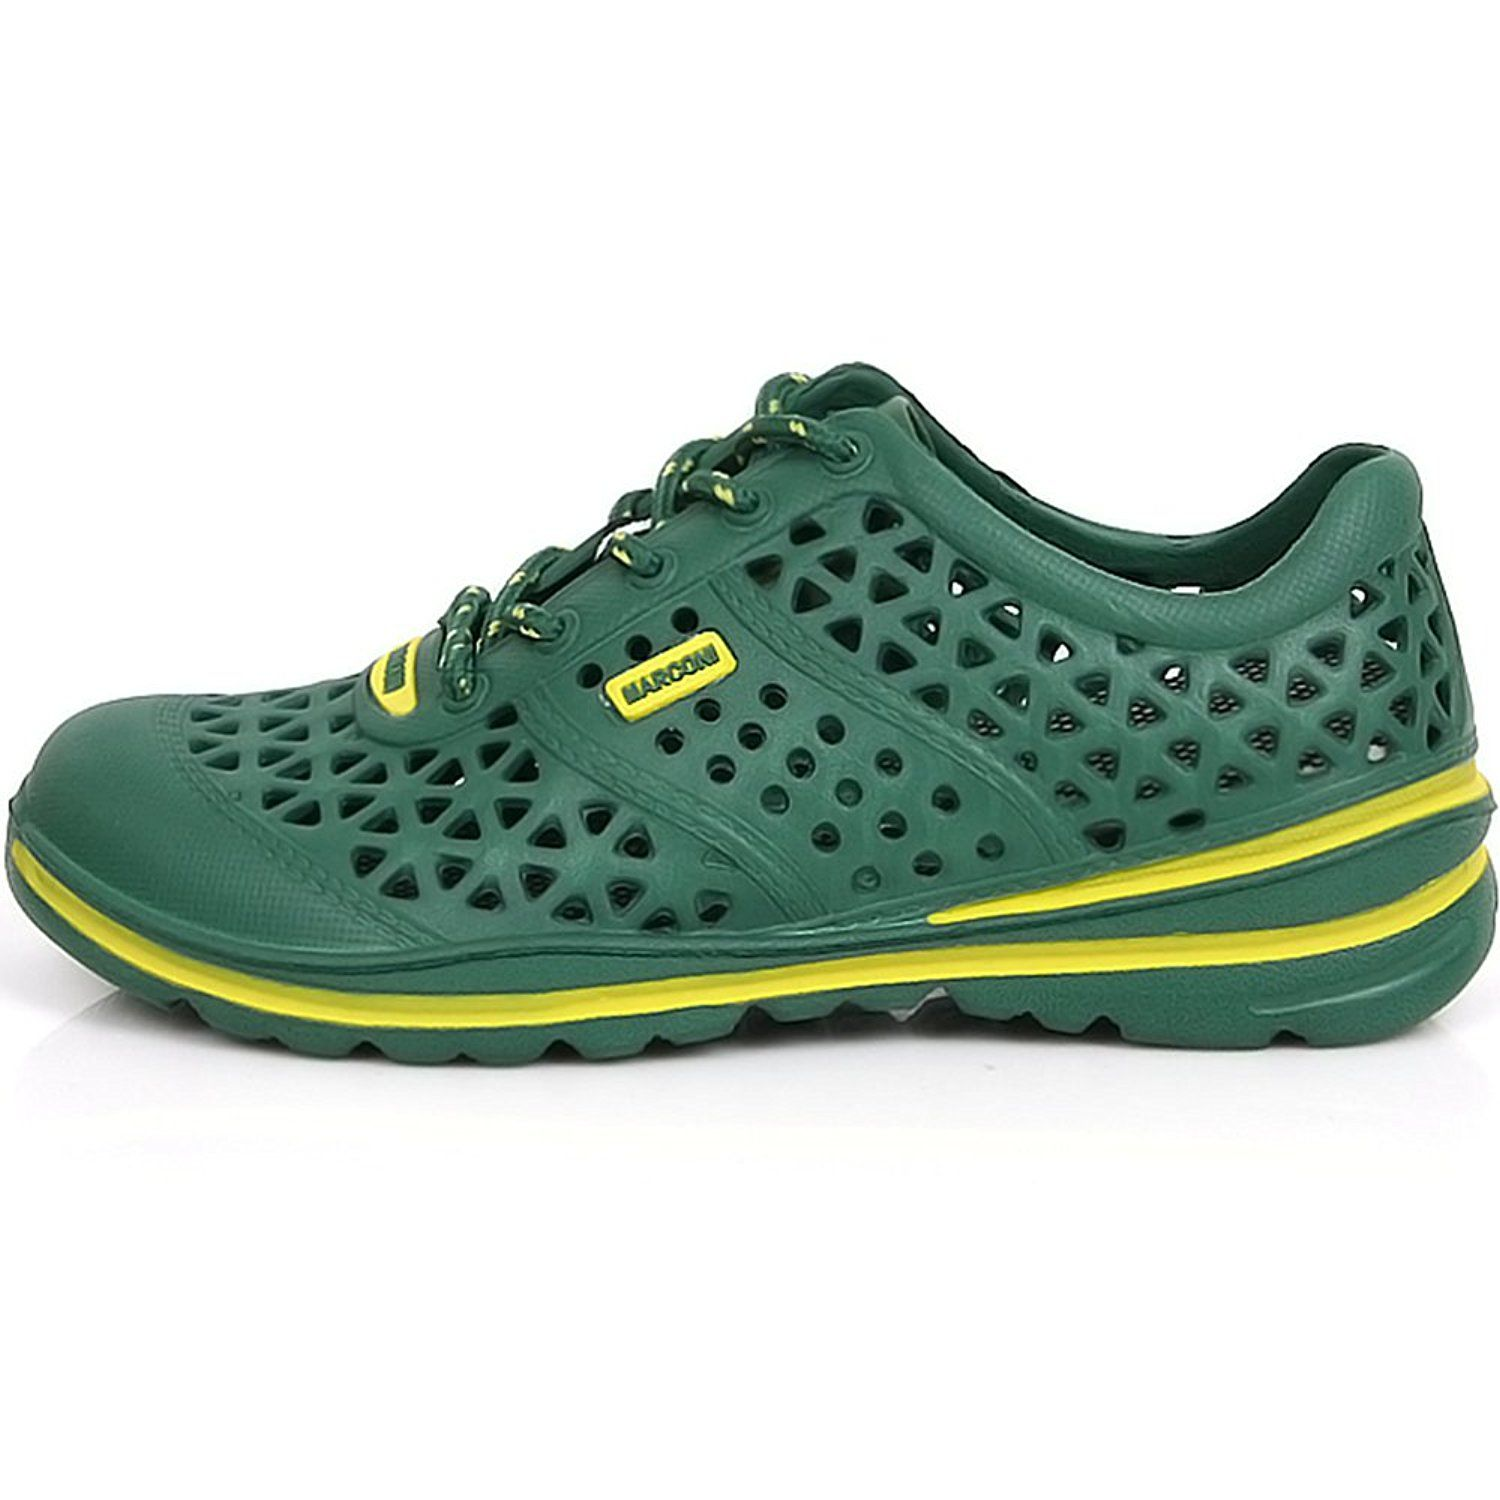 844b504e679d3 New Water Aqua Lace up Shoes Summer Beach Casual Womens Athletic Sandals  Green     Check out this great product.